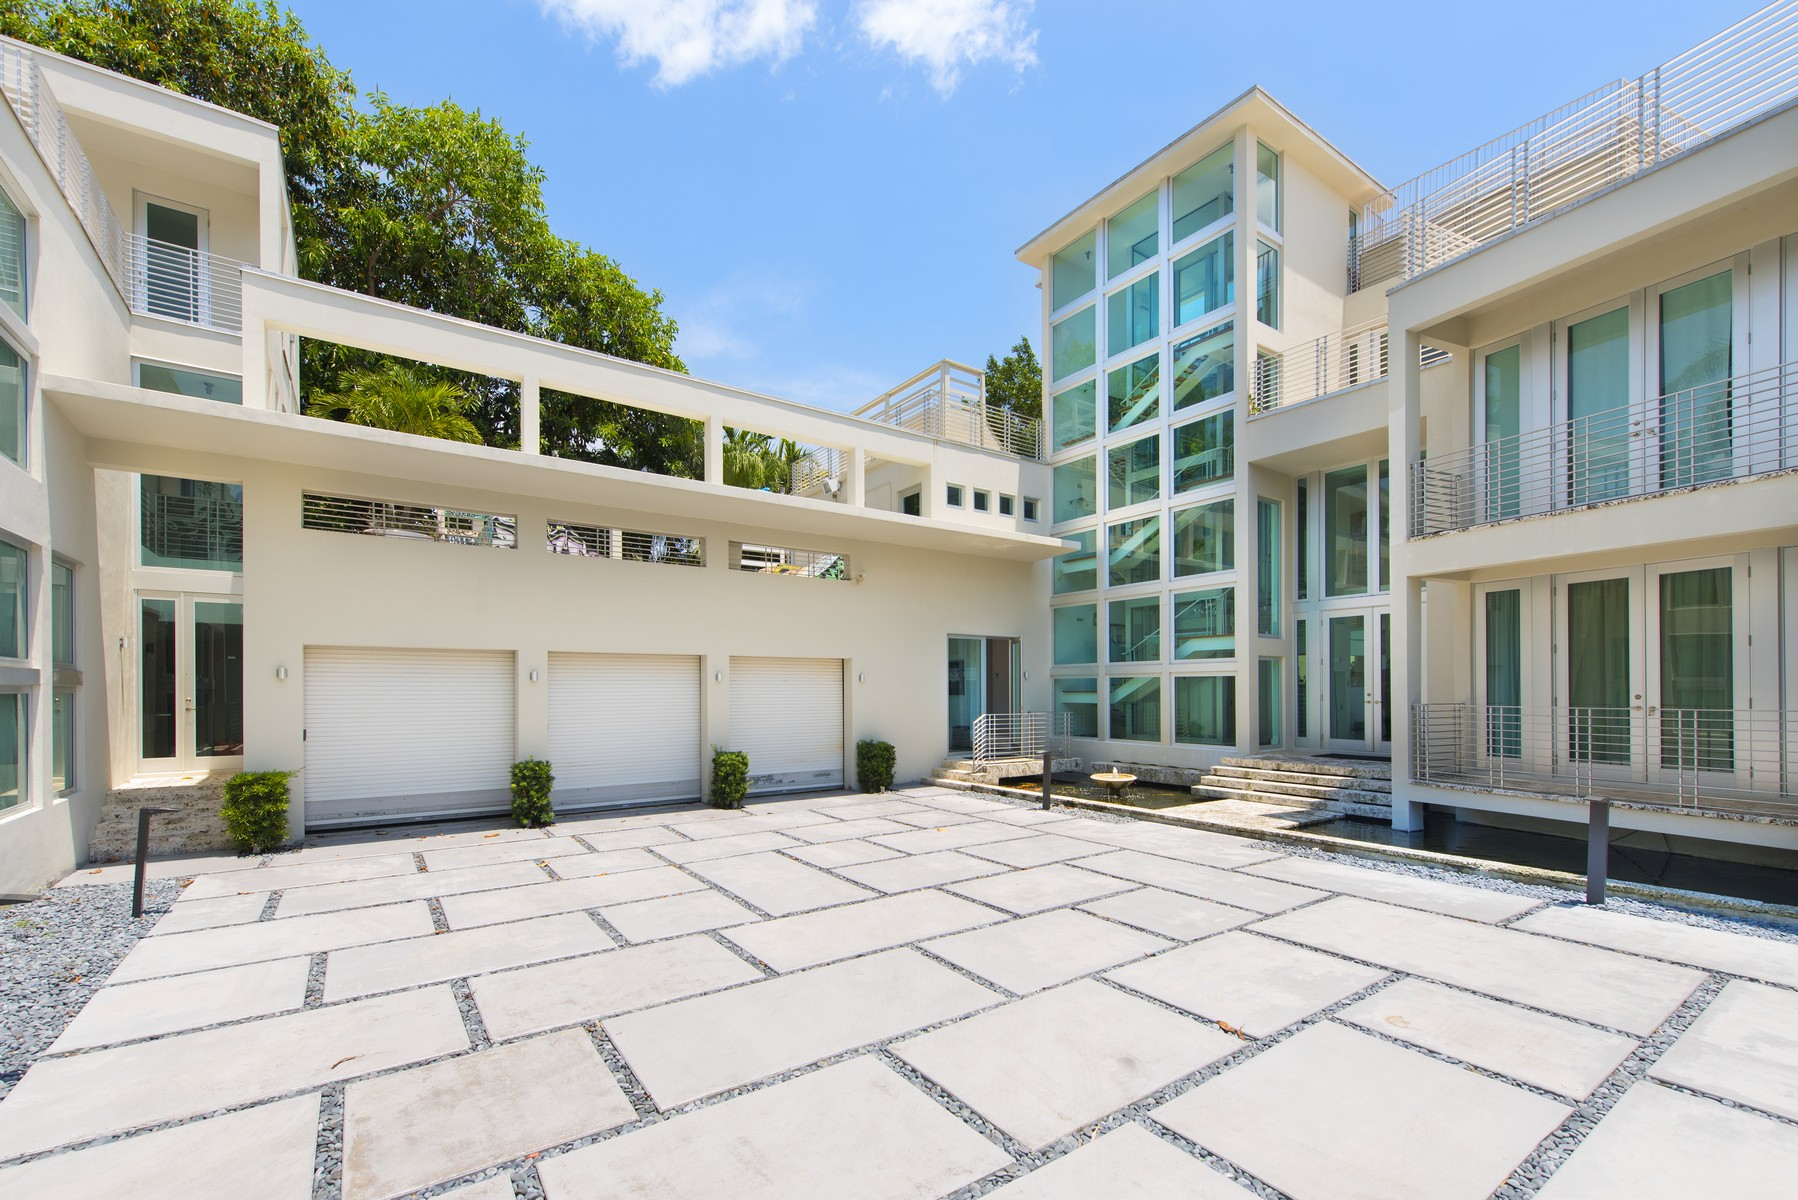 Single Family Home for Sale at 94 La Gorce 94 La Gorce Cir Miami Beach, Florida 33141 United States